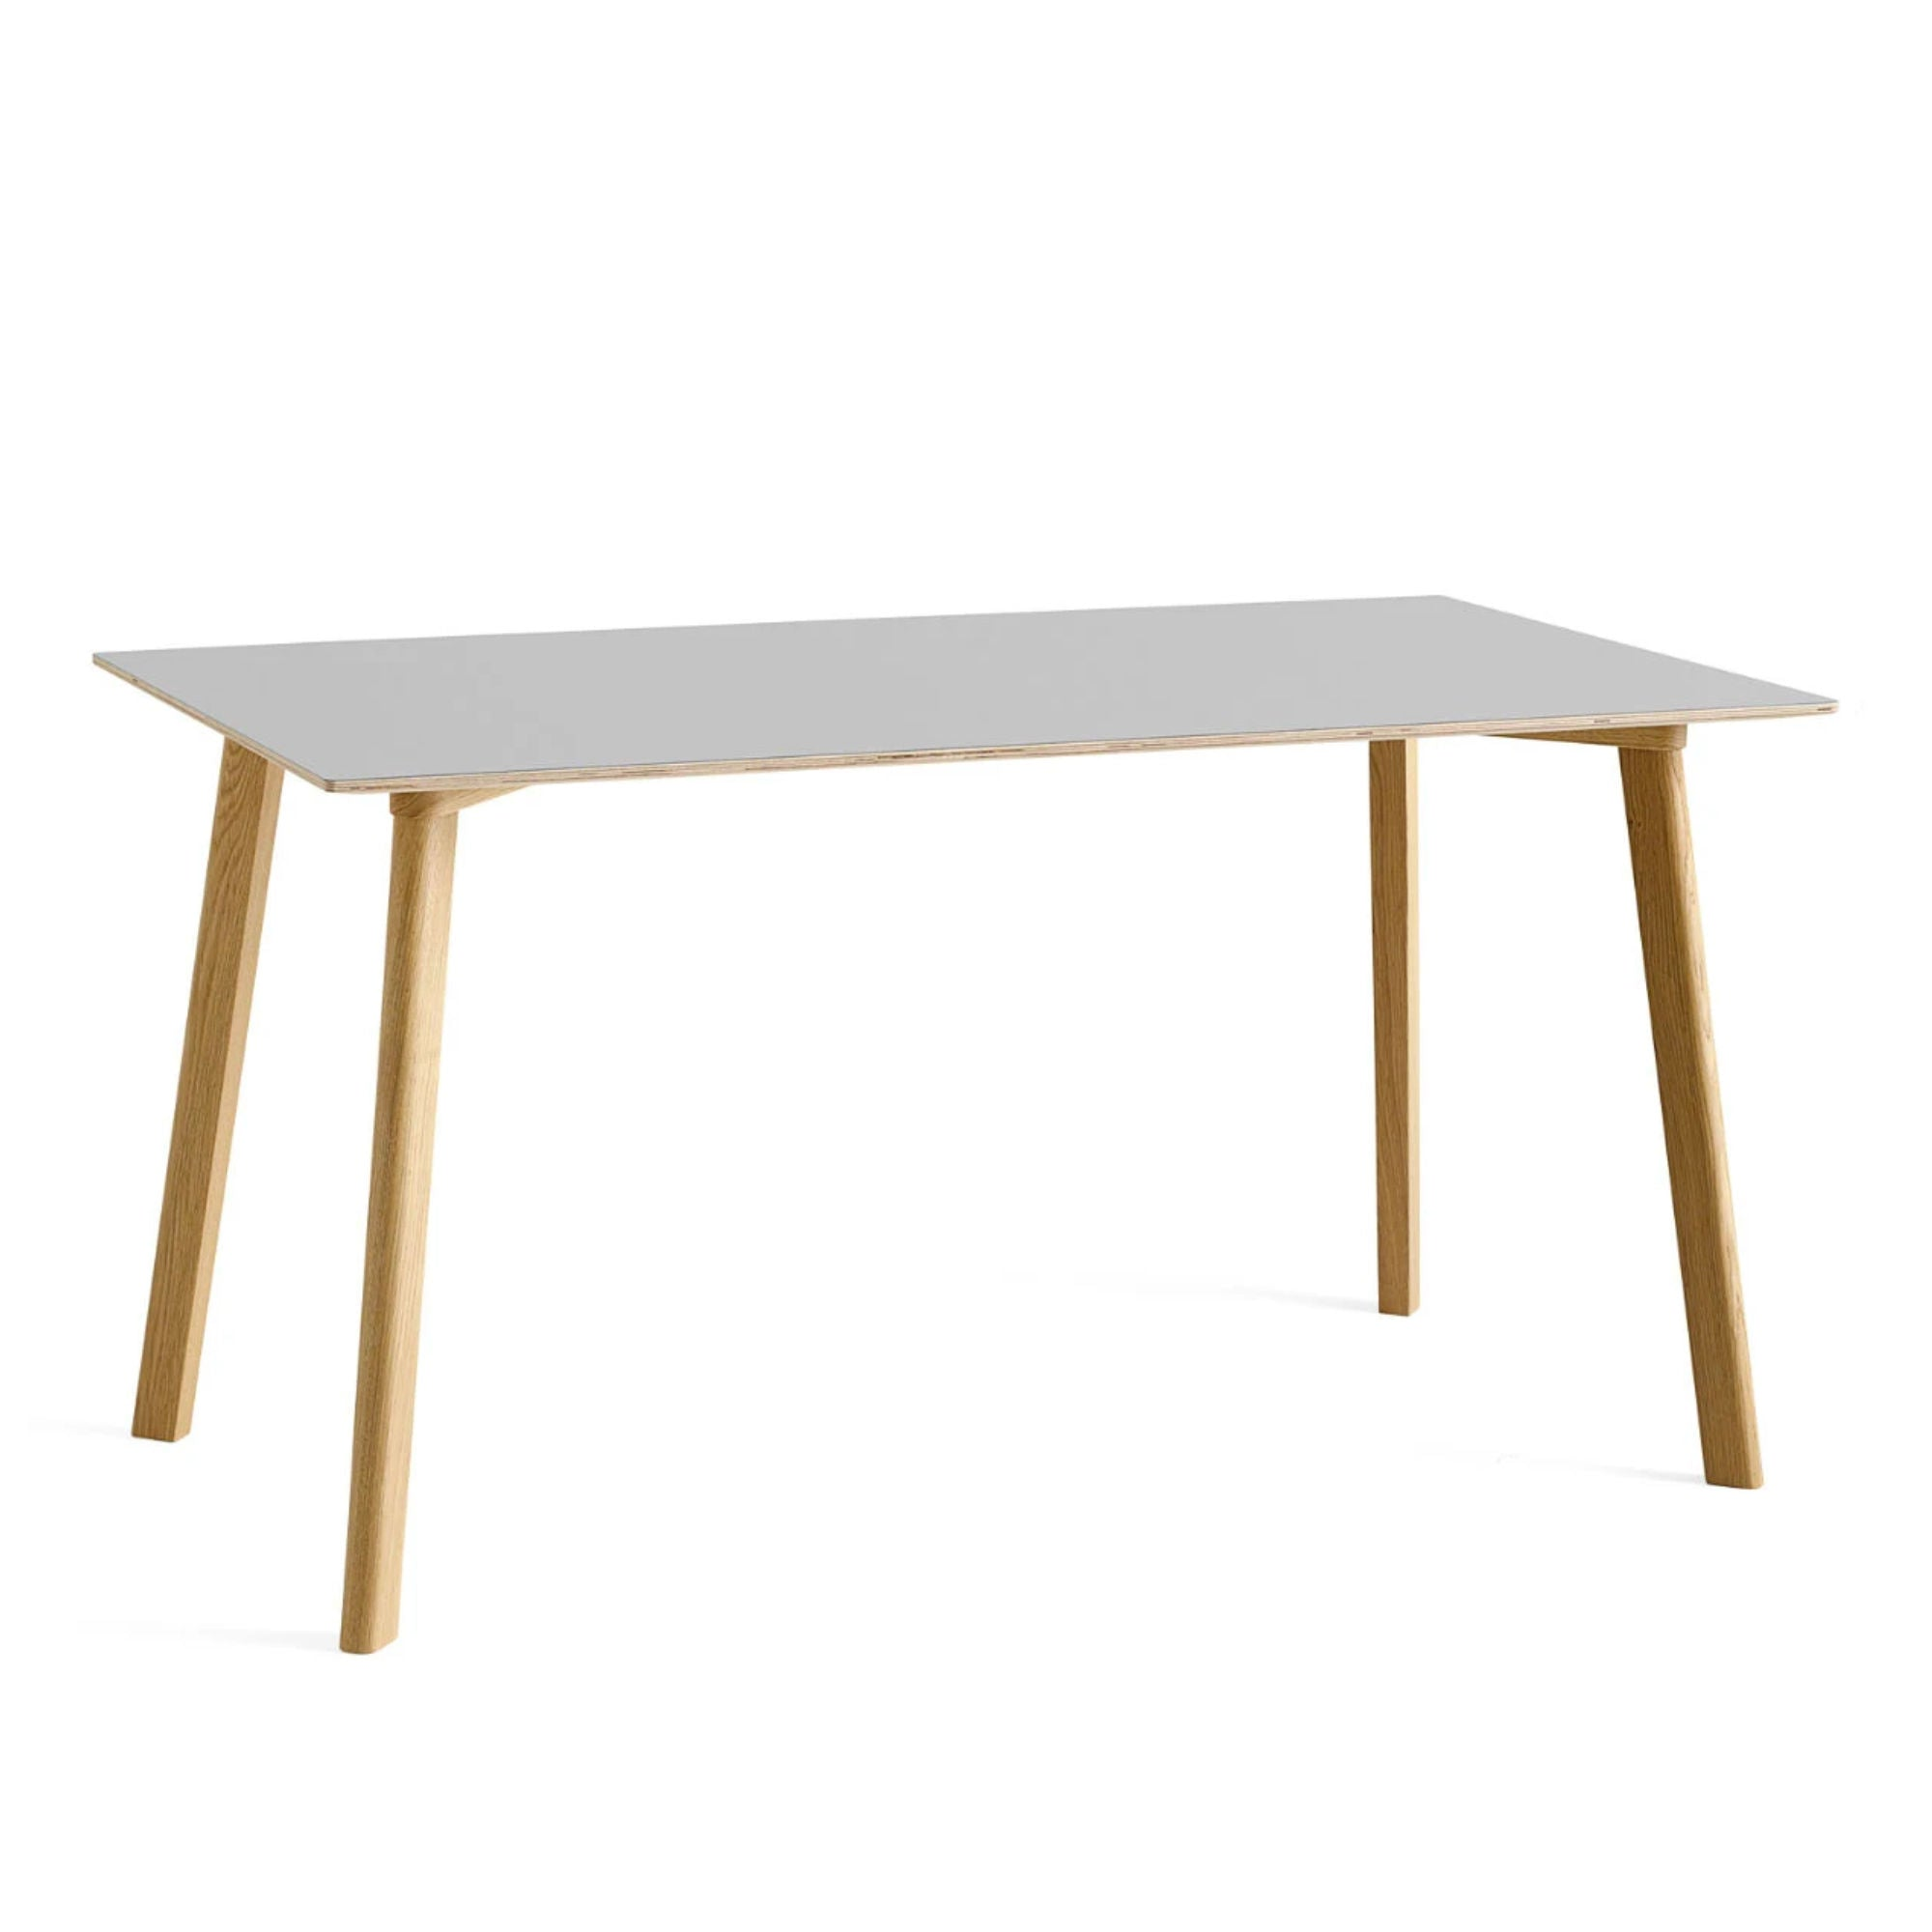 CPH Deux 210 table L140 x W75 , Dusty Grey - Matt Lacquered Oak